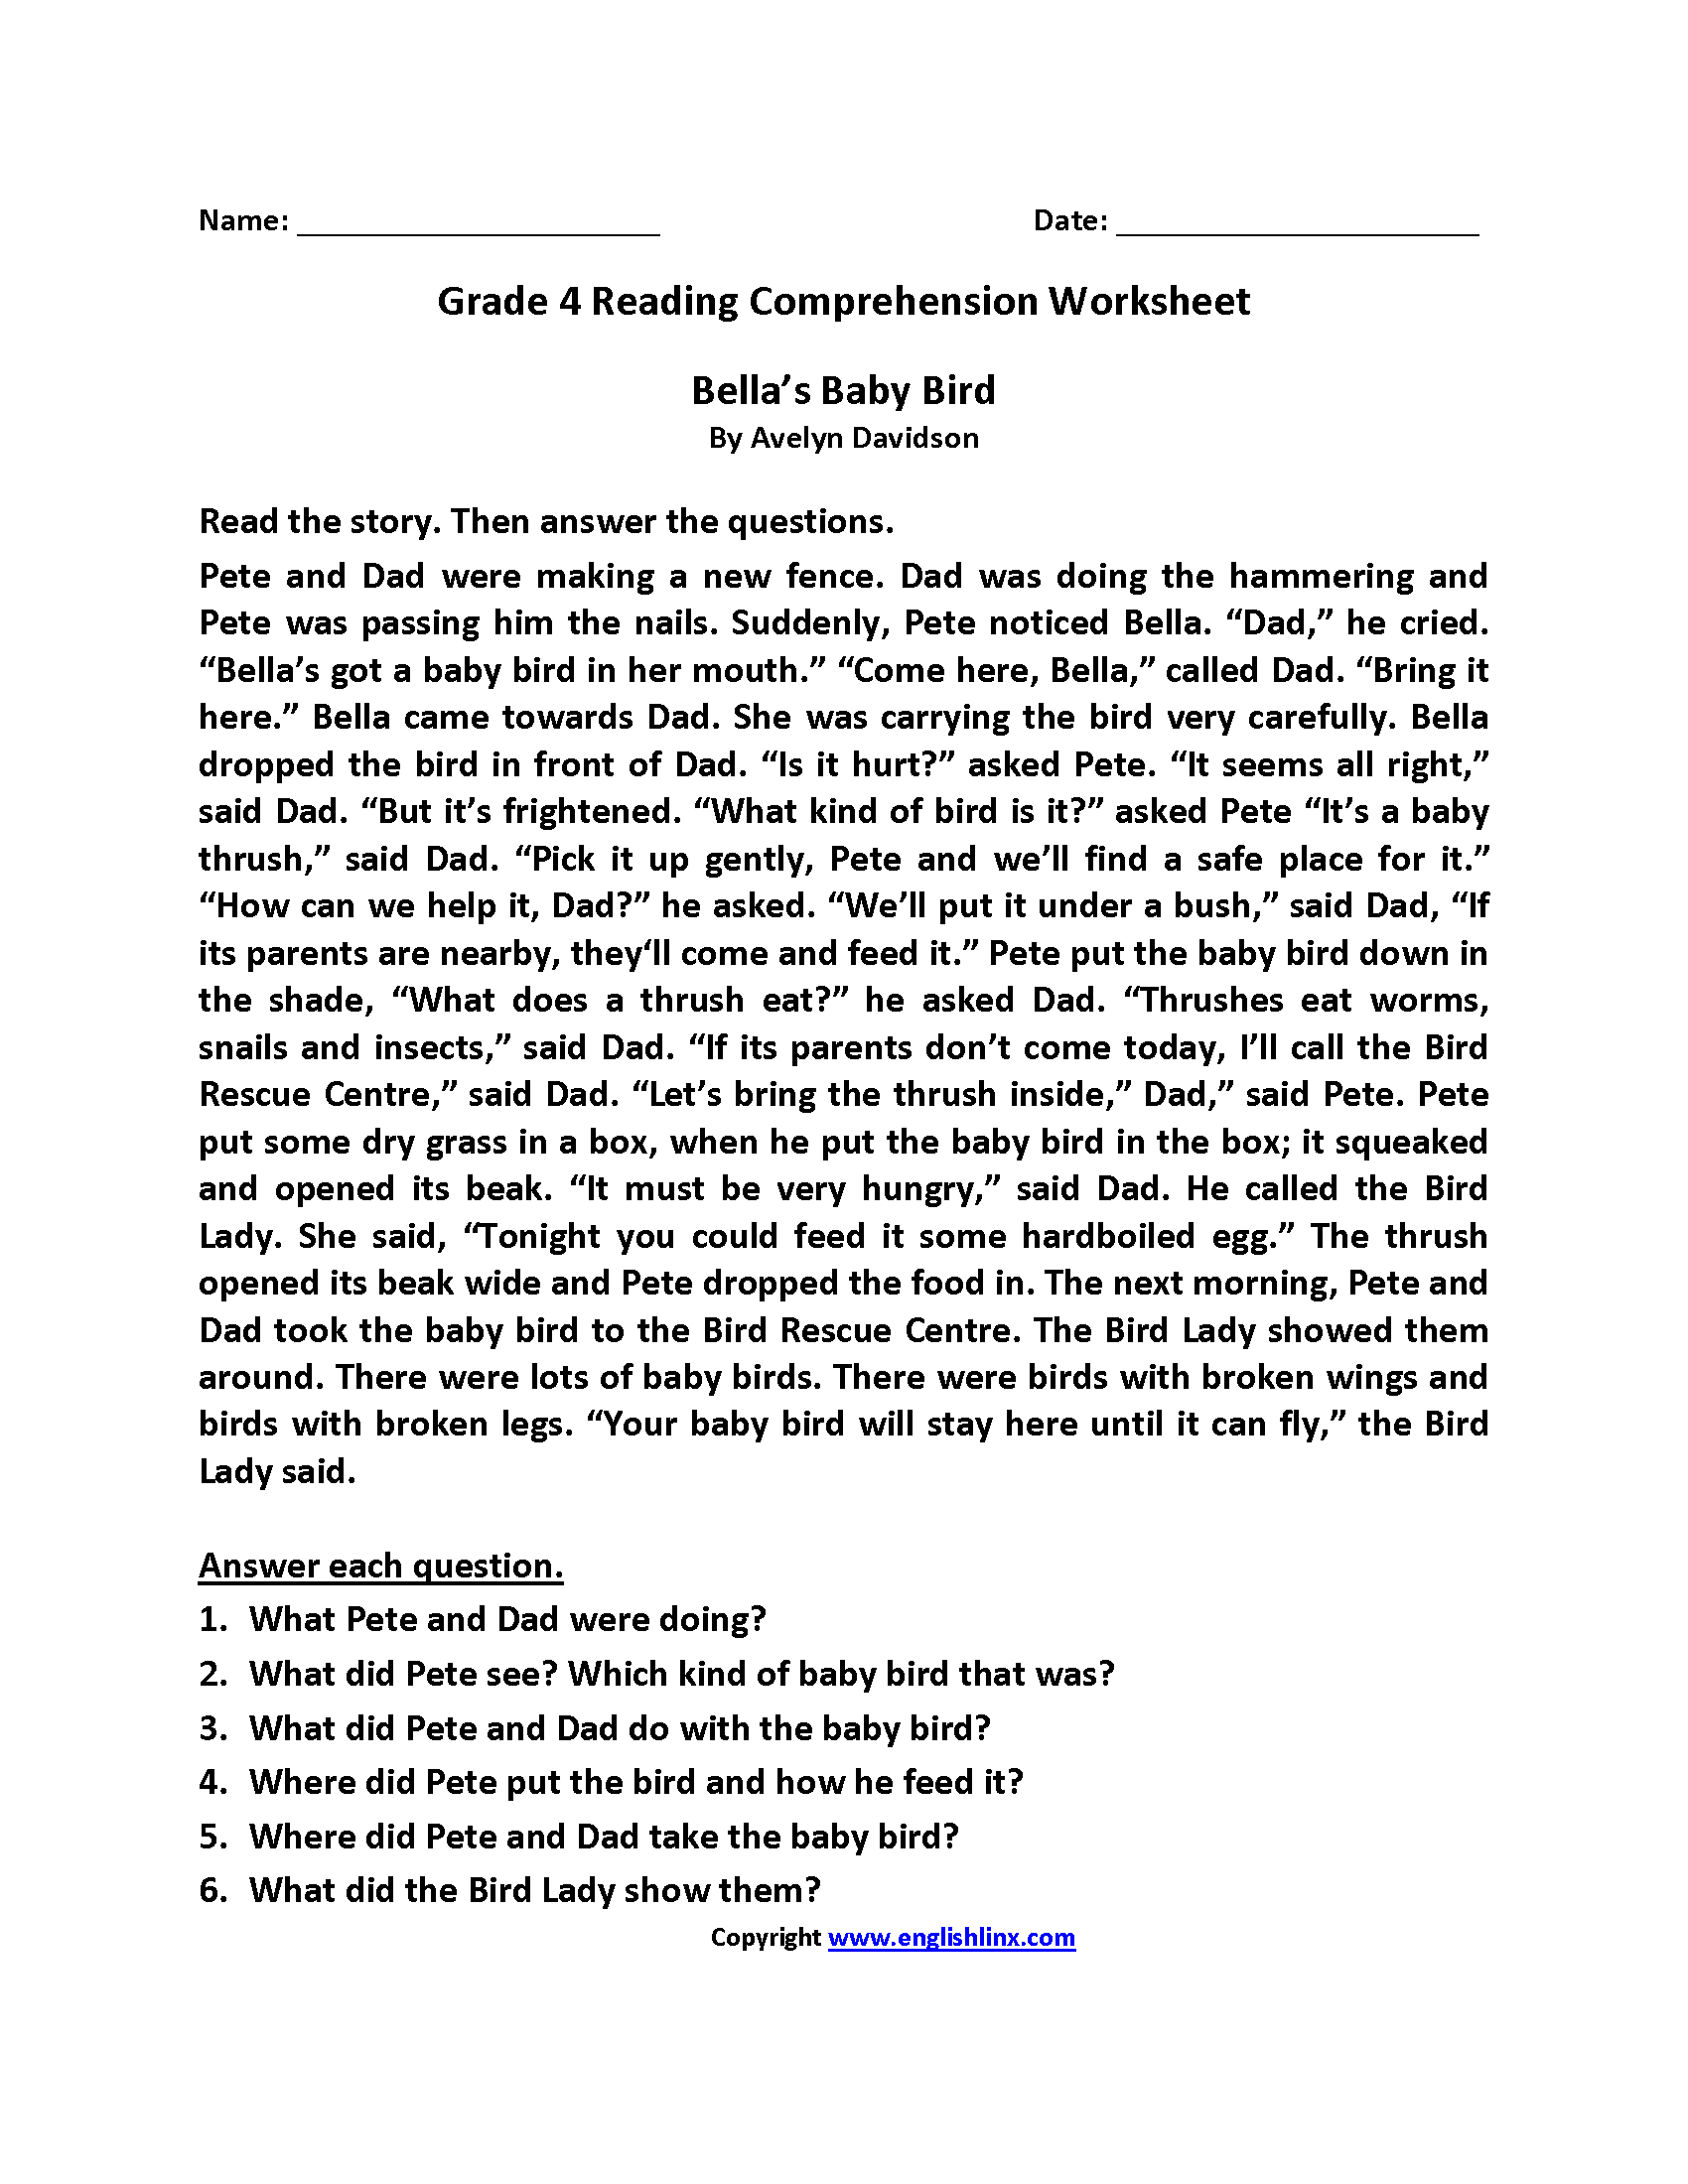 Worksheets Reading Worksheets For 4th Grade reading worksheets fourth grade worksheets